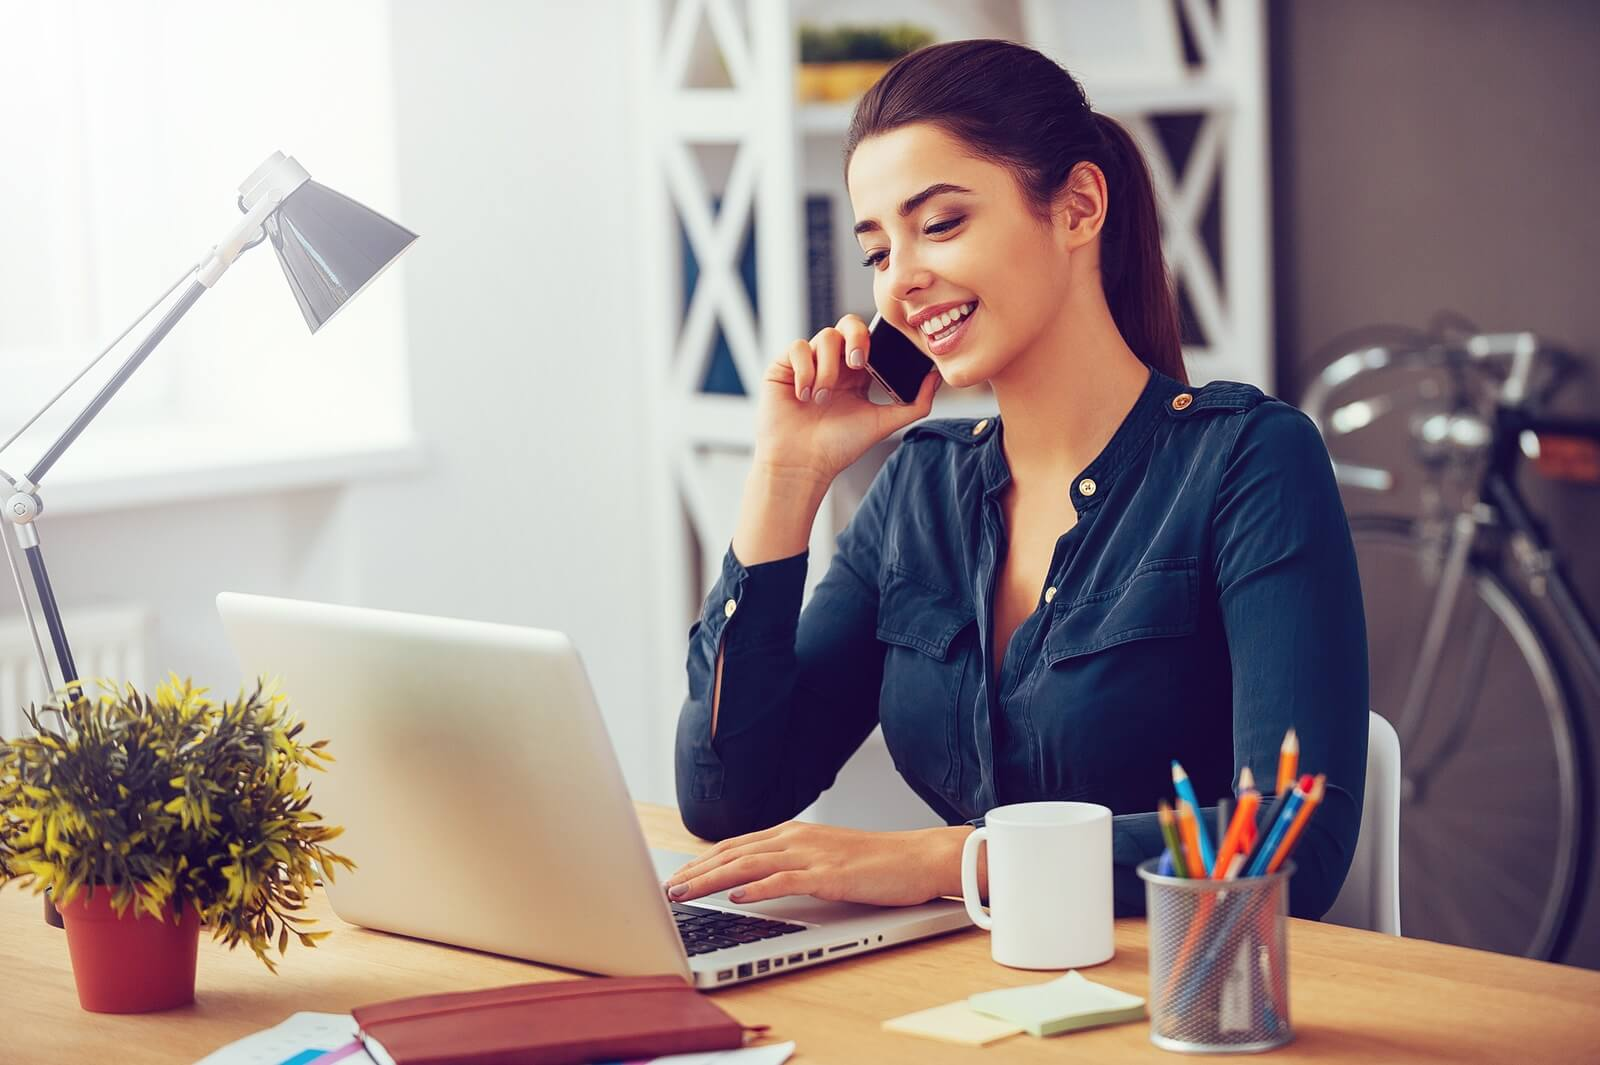 smiling woman talking on the phone in her home office